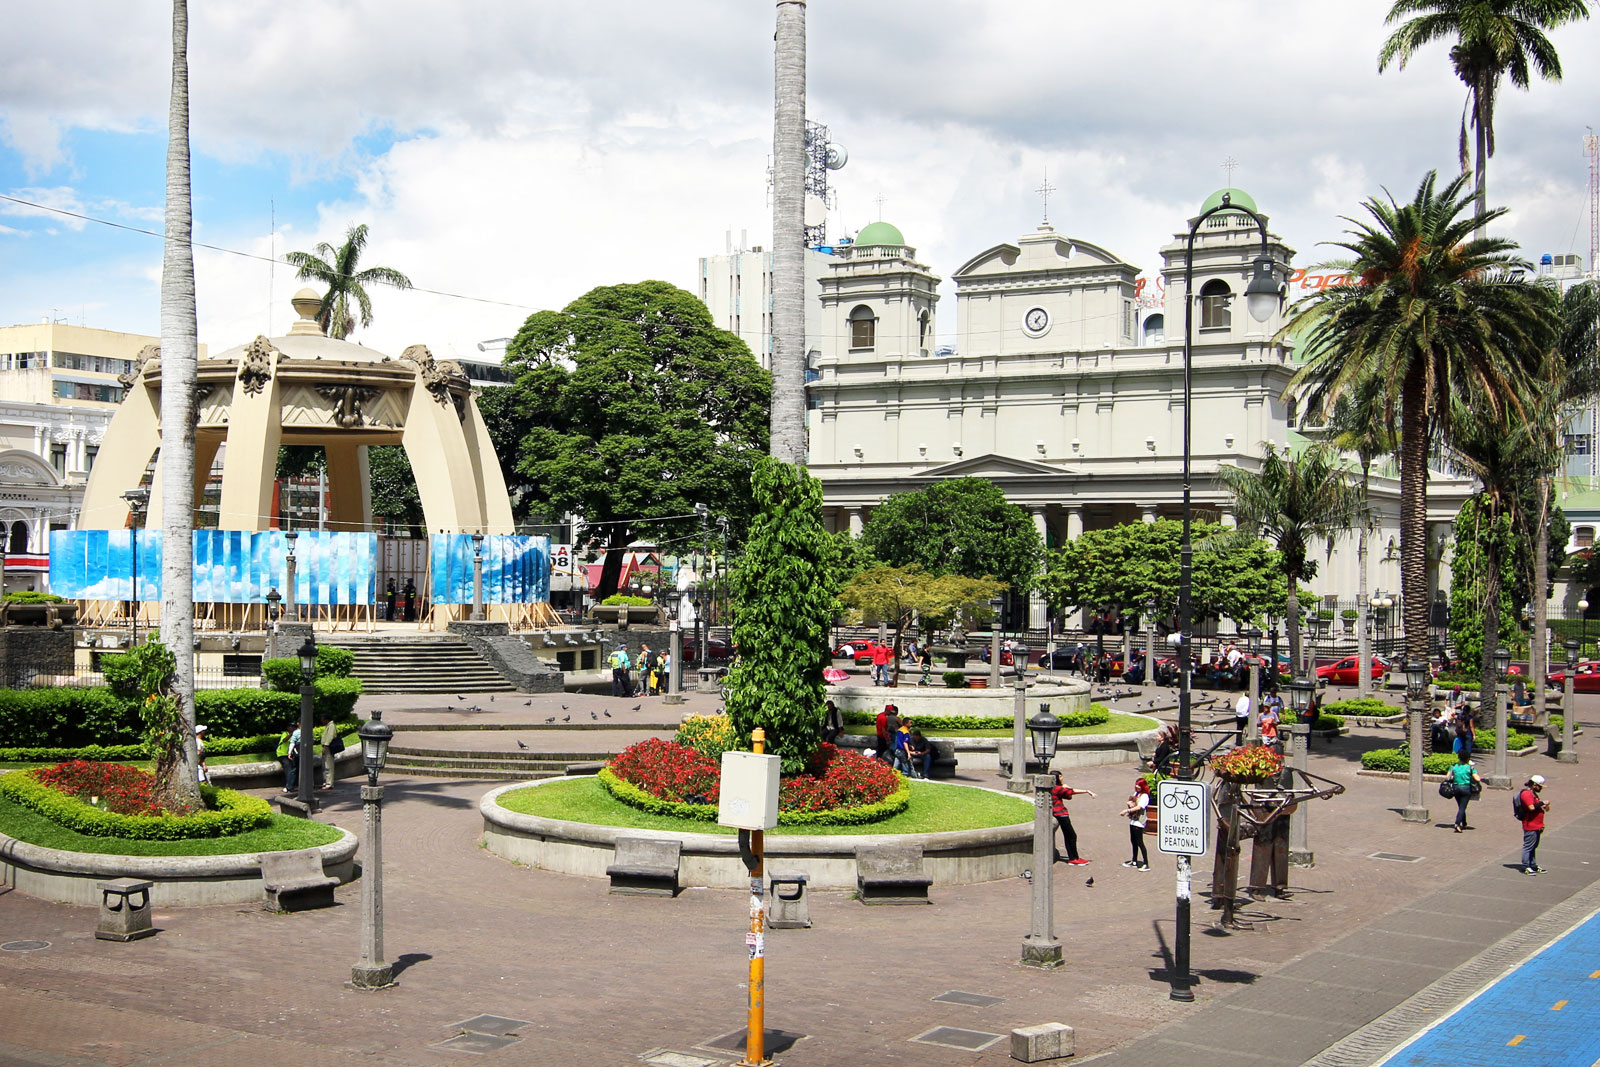 Parque Central de San José, one of the capital city's busiest squares, and popular meeting spot.